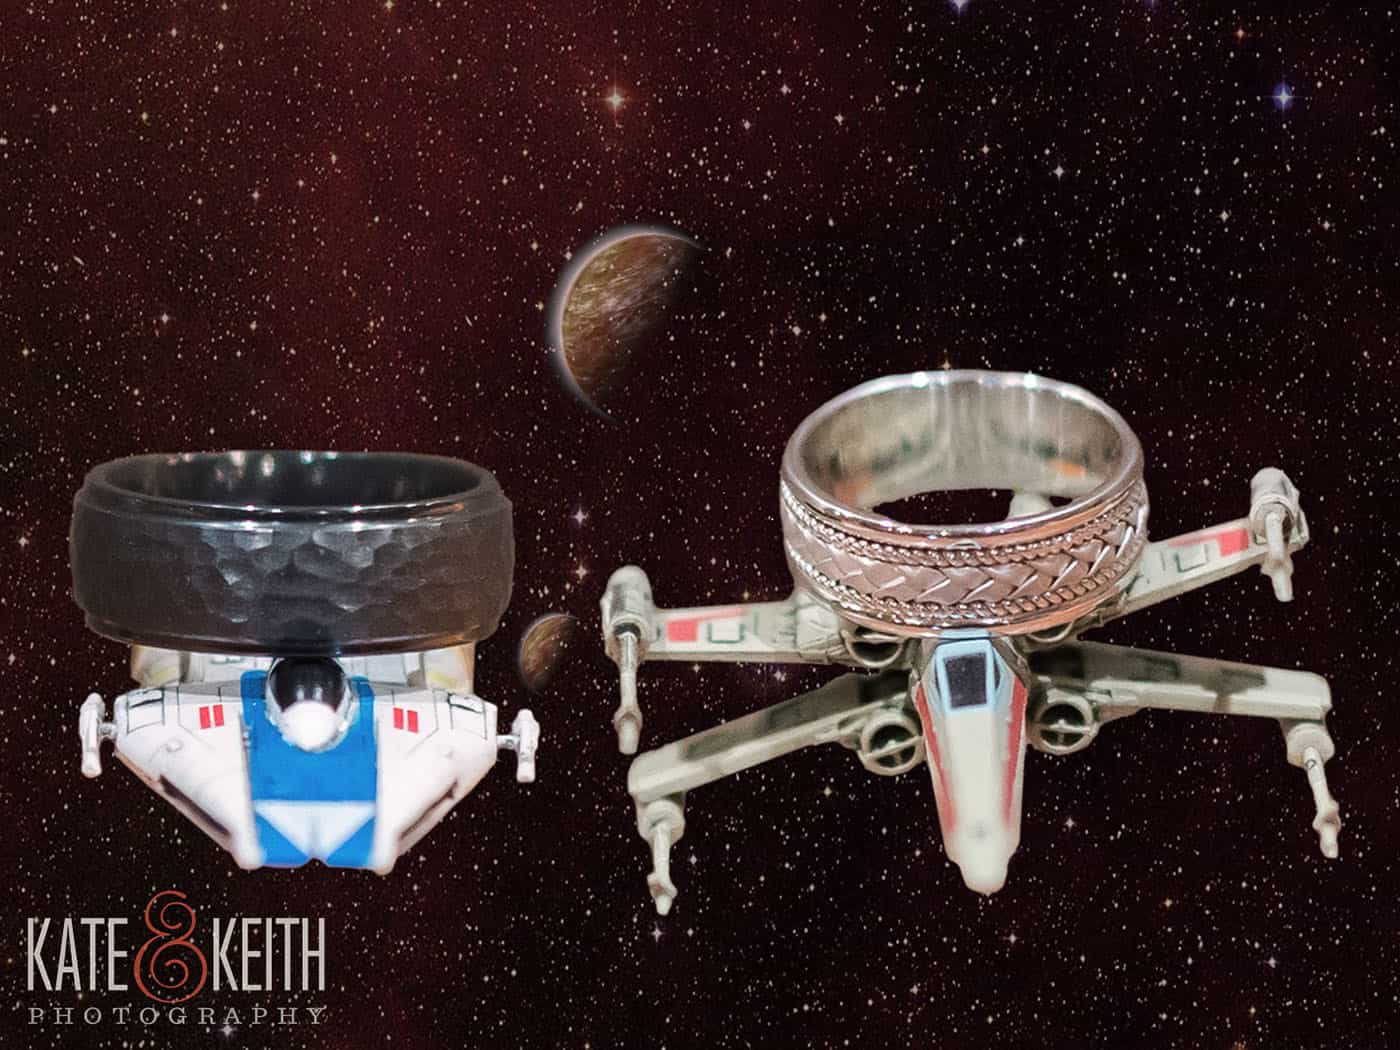 Wedding rings placed on Star Wars space ships